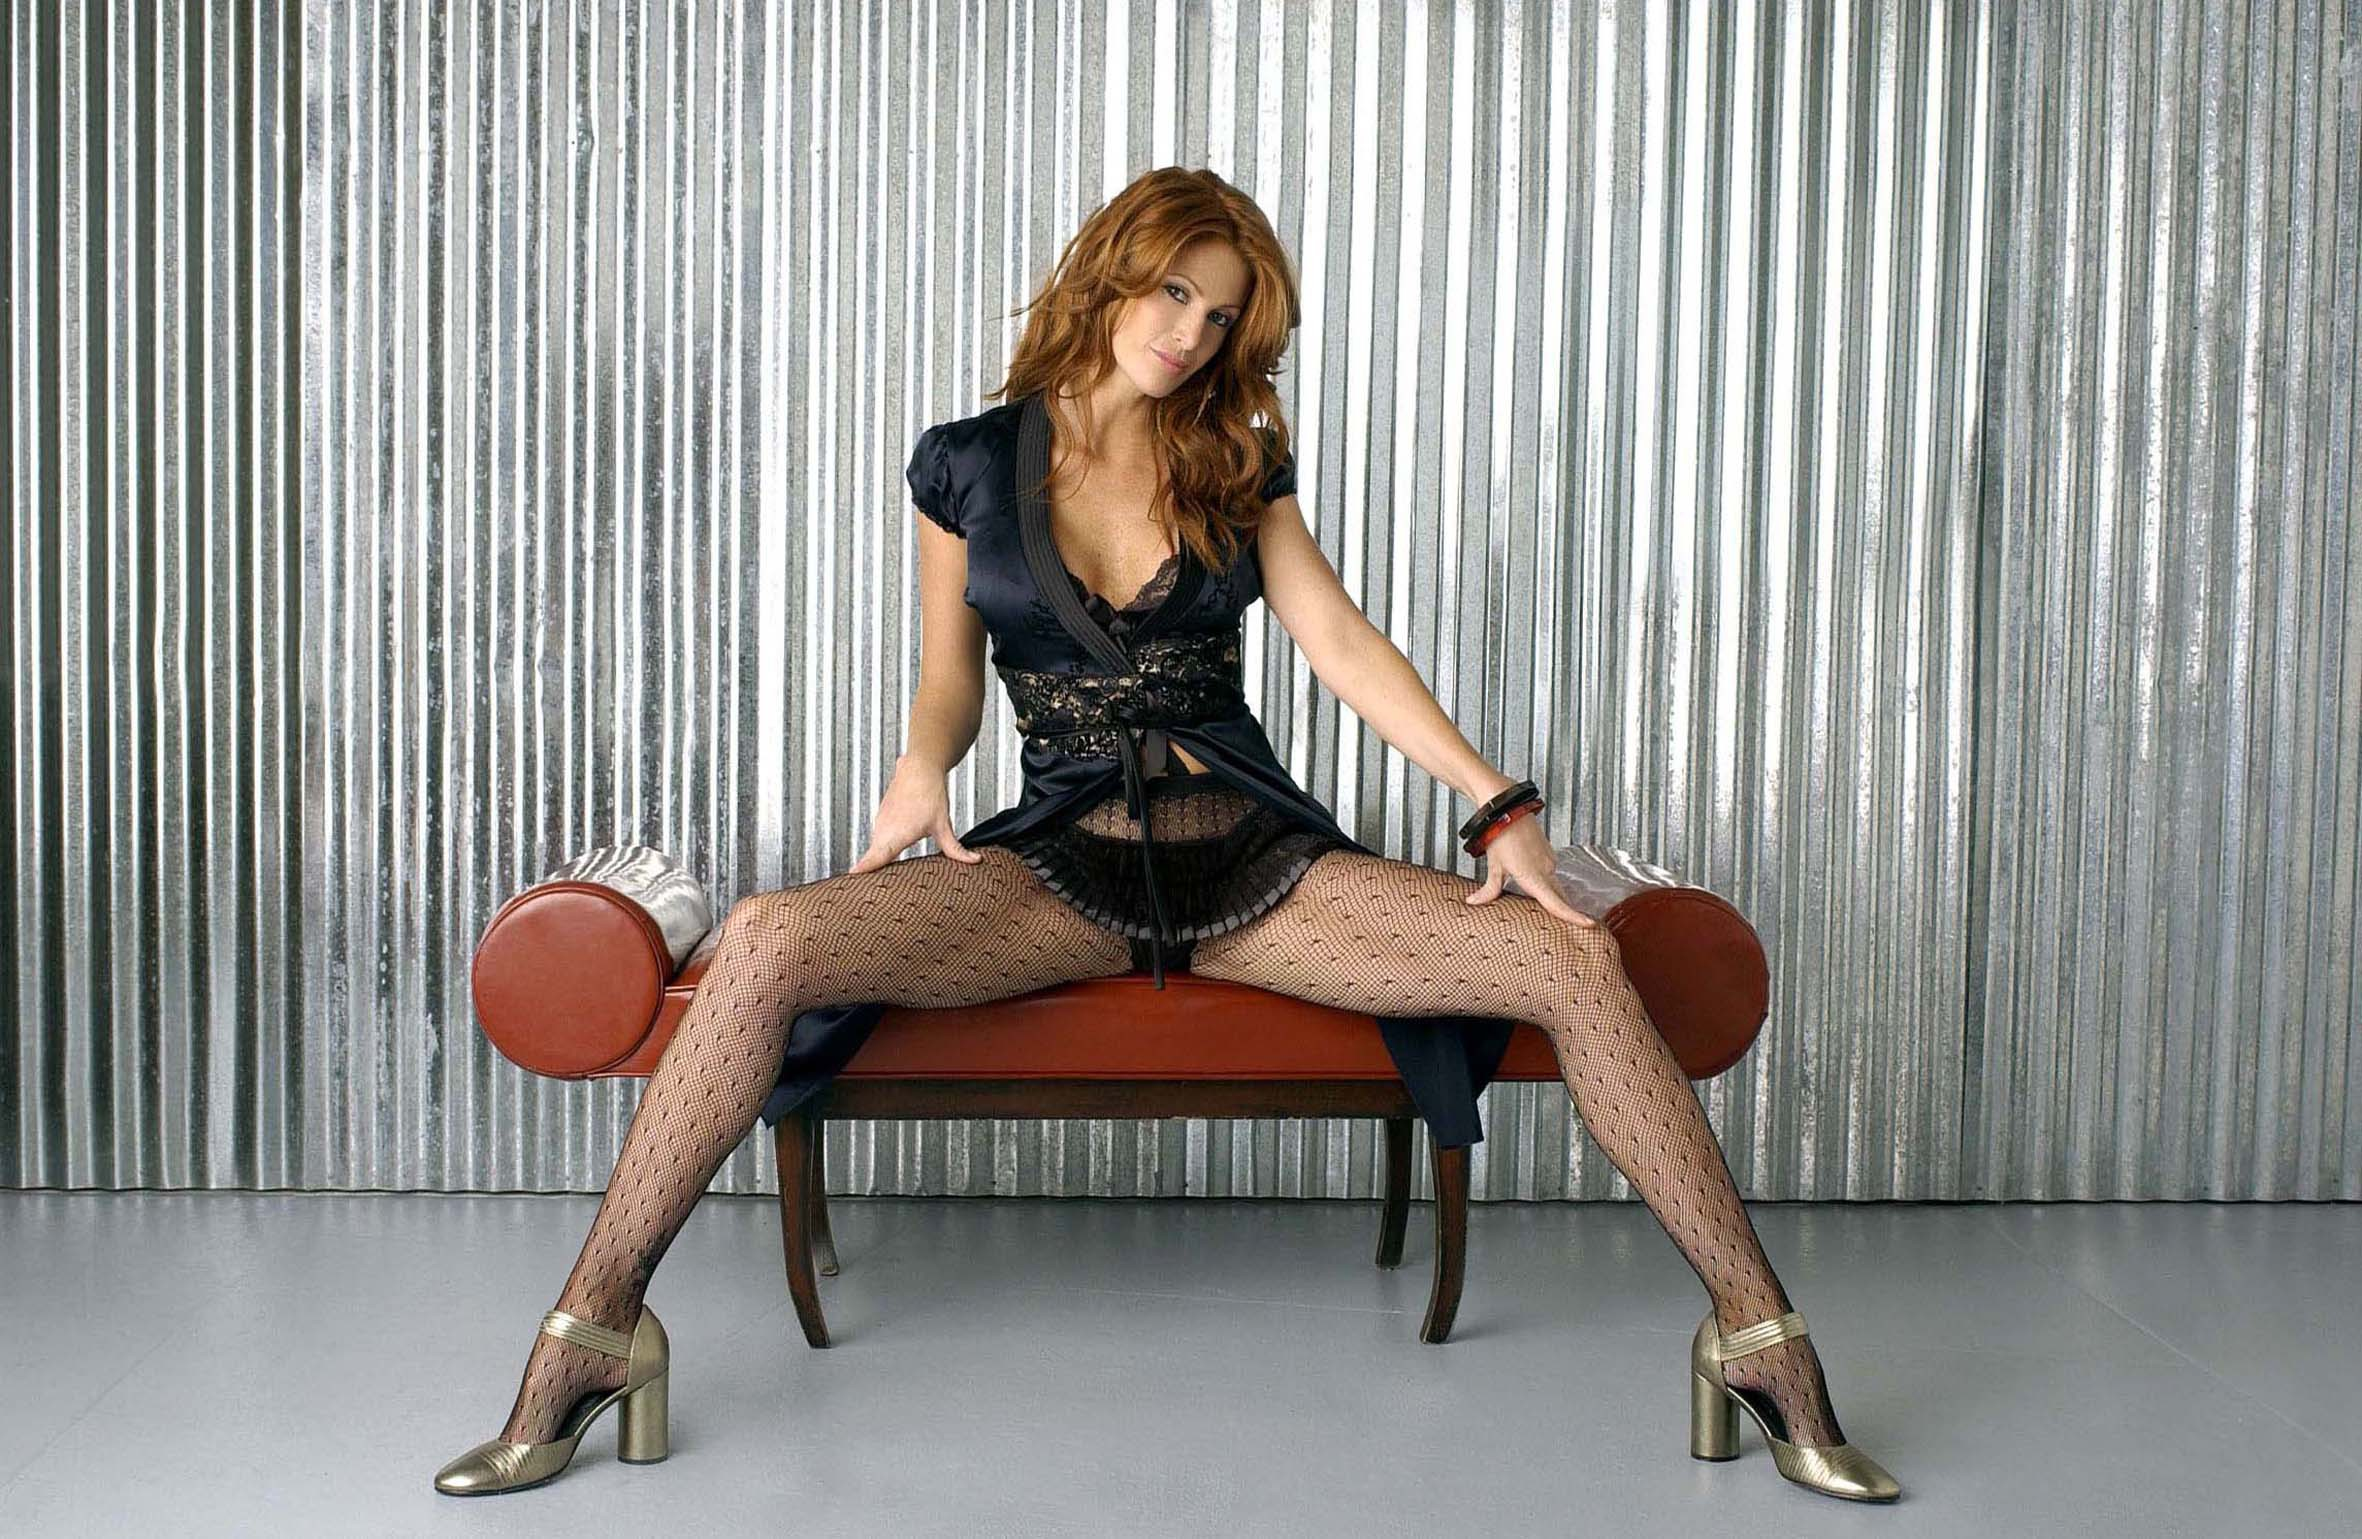 angie everhart wallpapers images photos pictures backgrounds